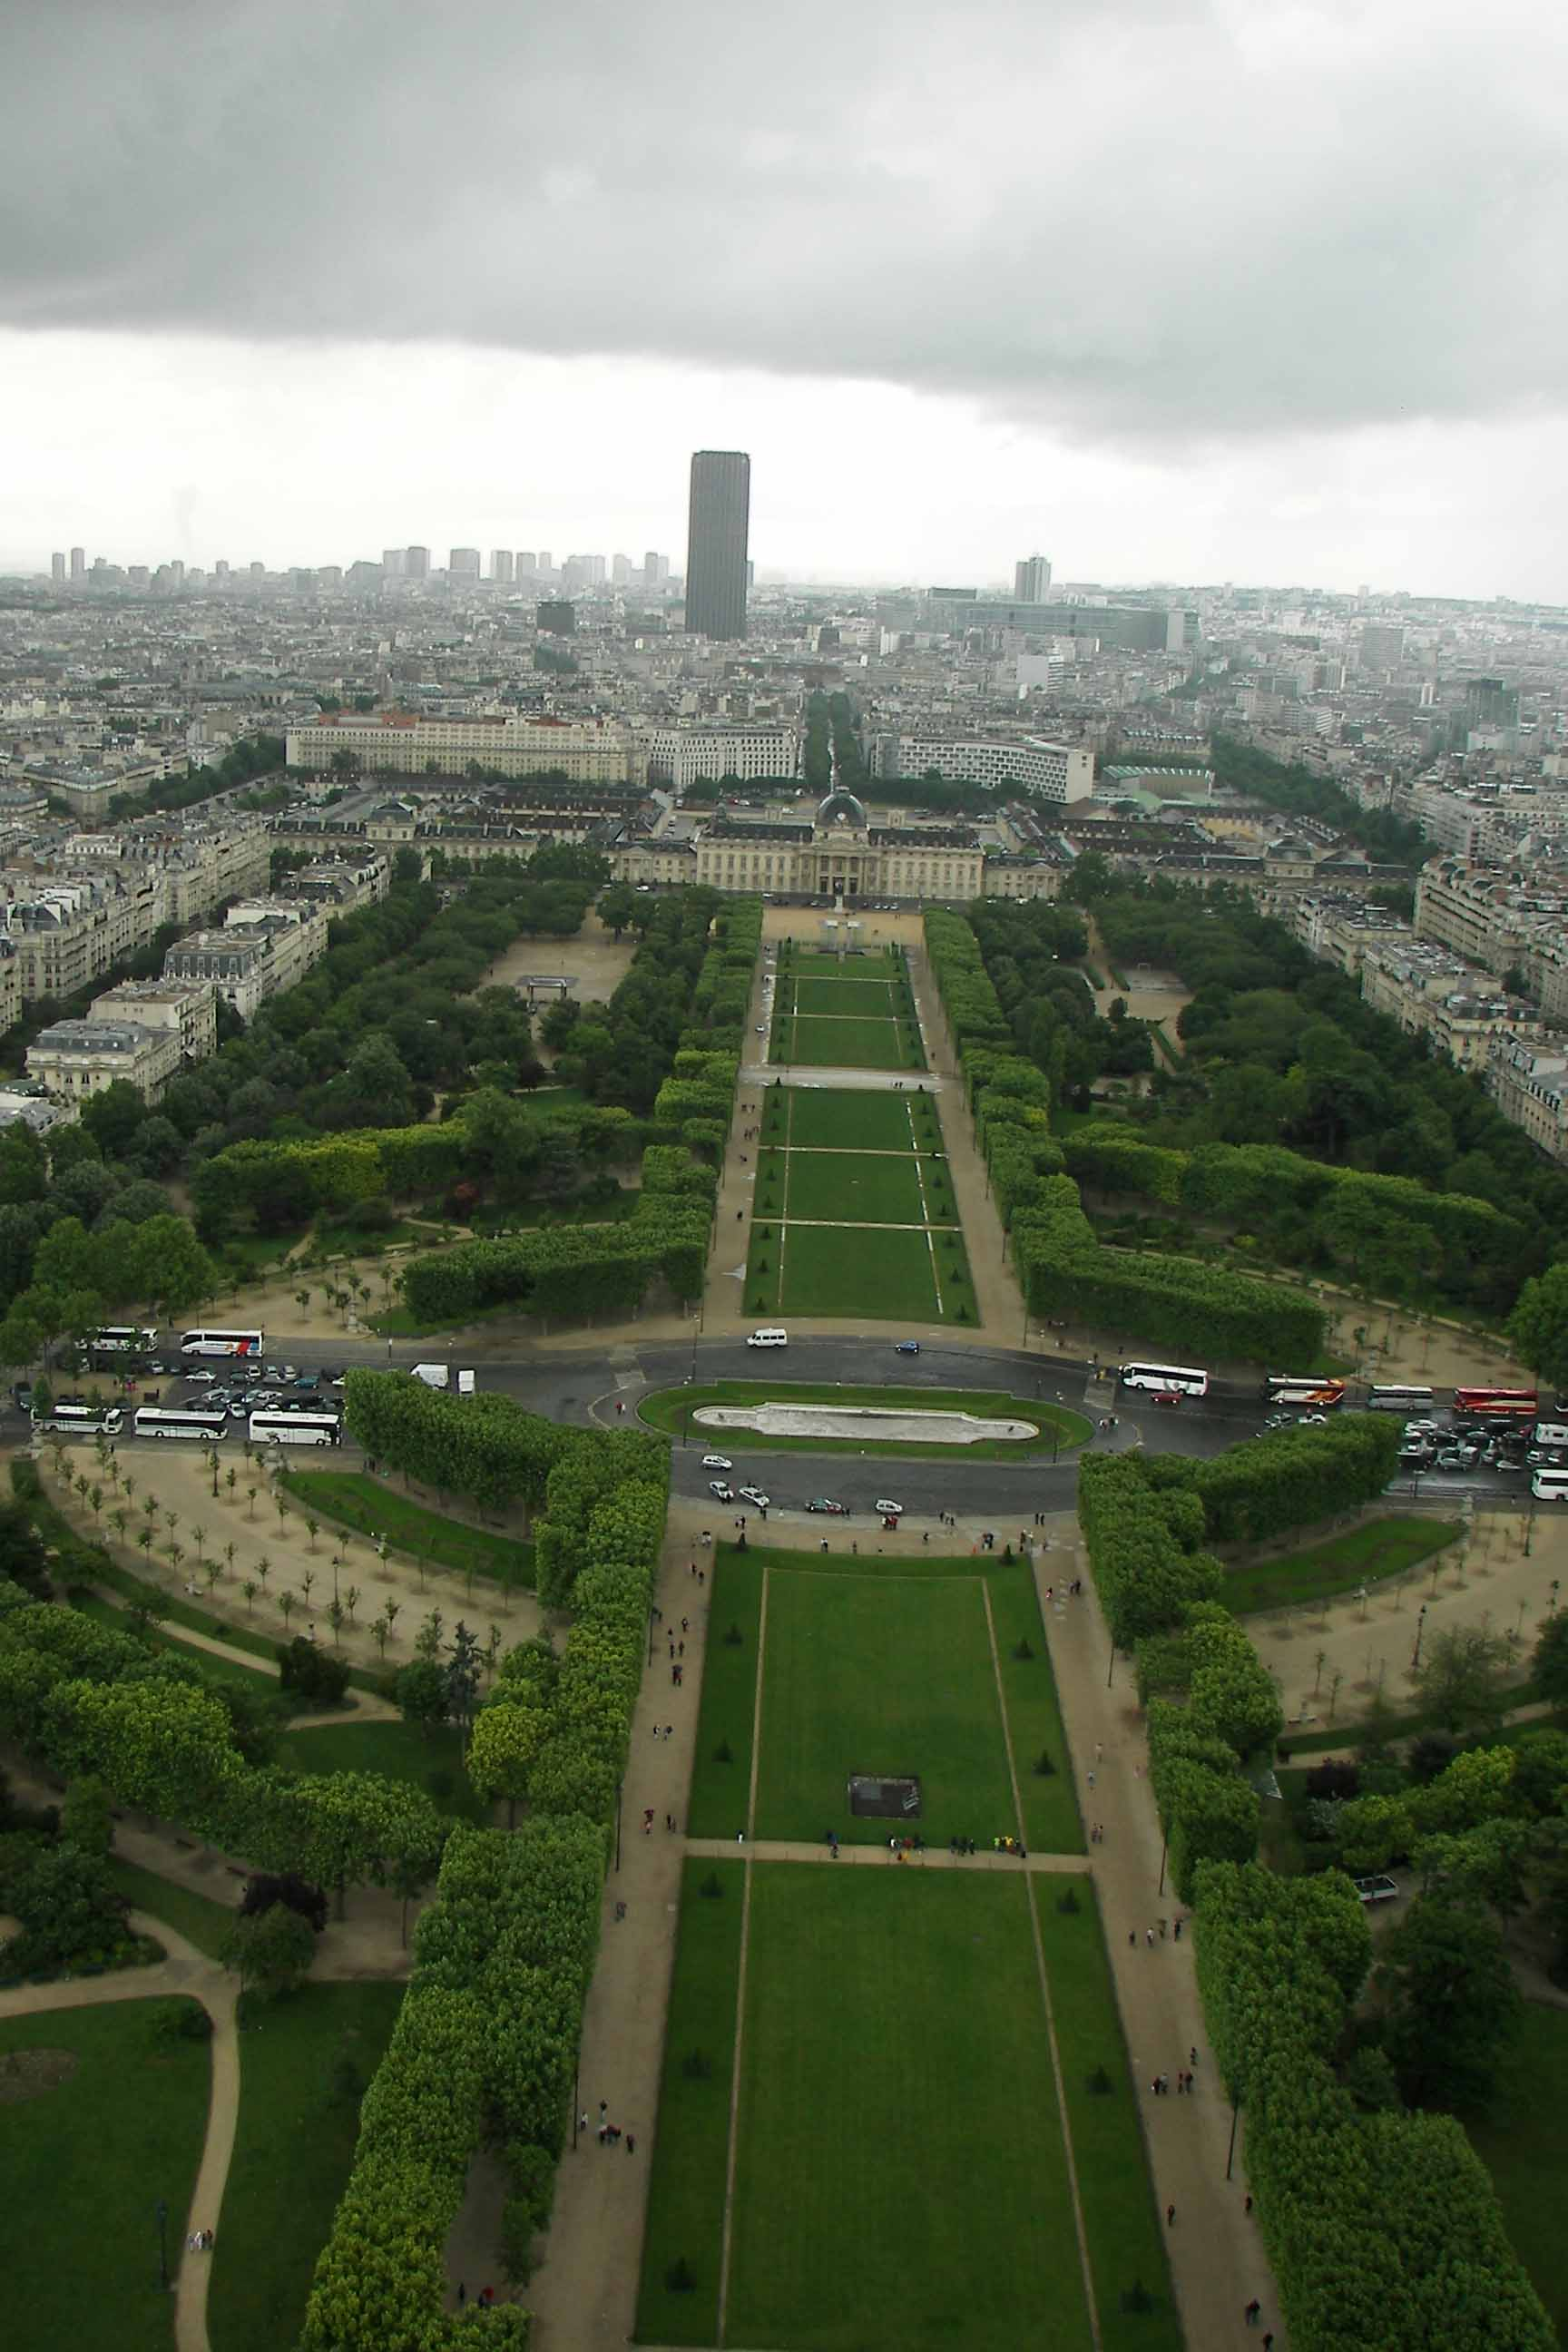 karinv view from the eiffeltower paris city cityview cityscape grass fields roads buildings offices coaches